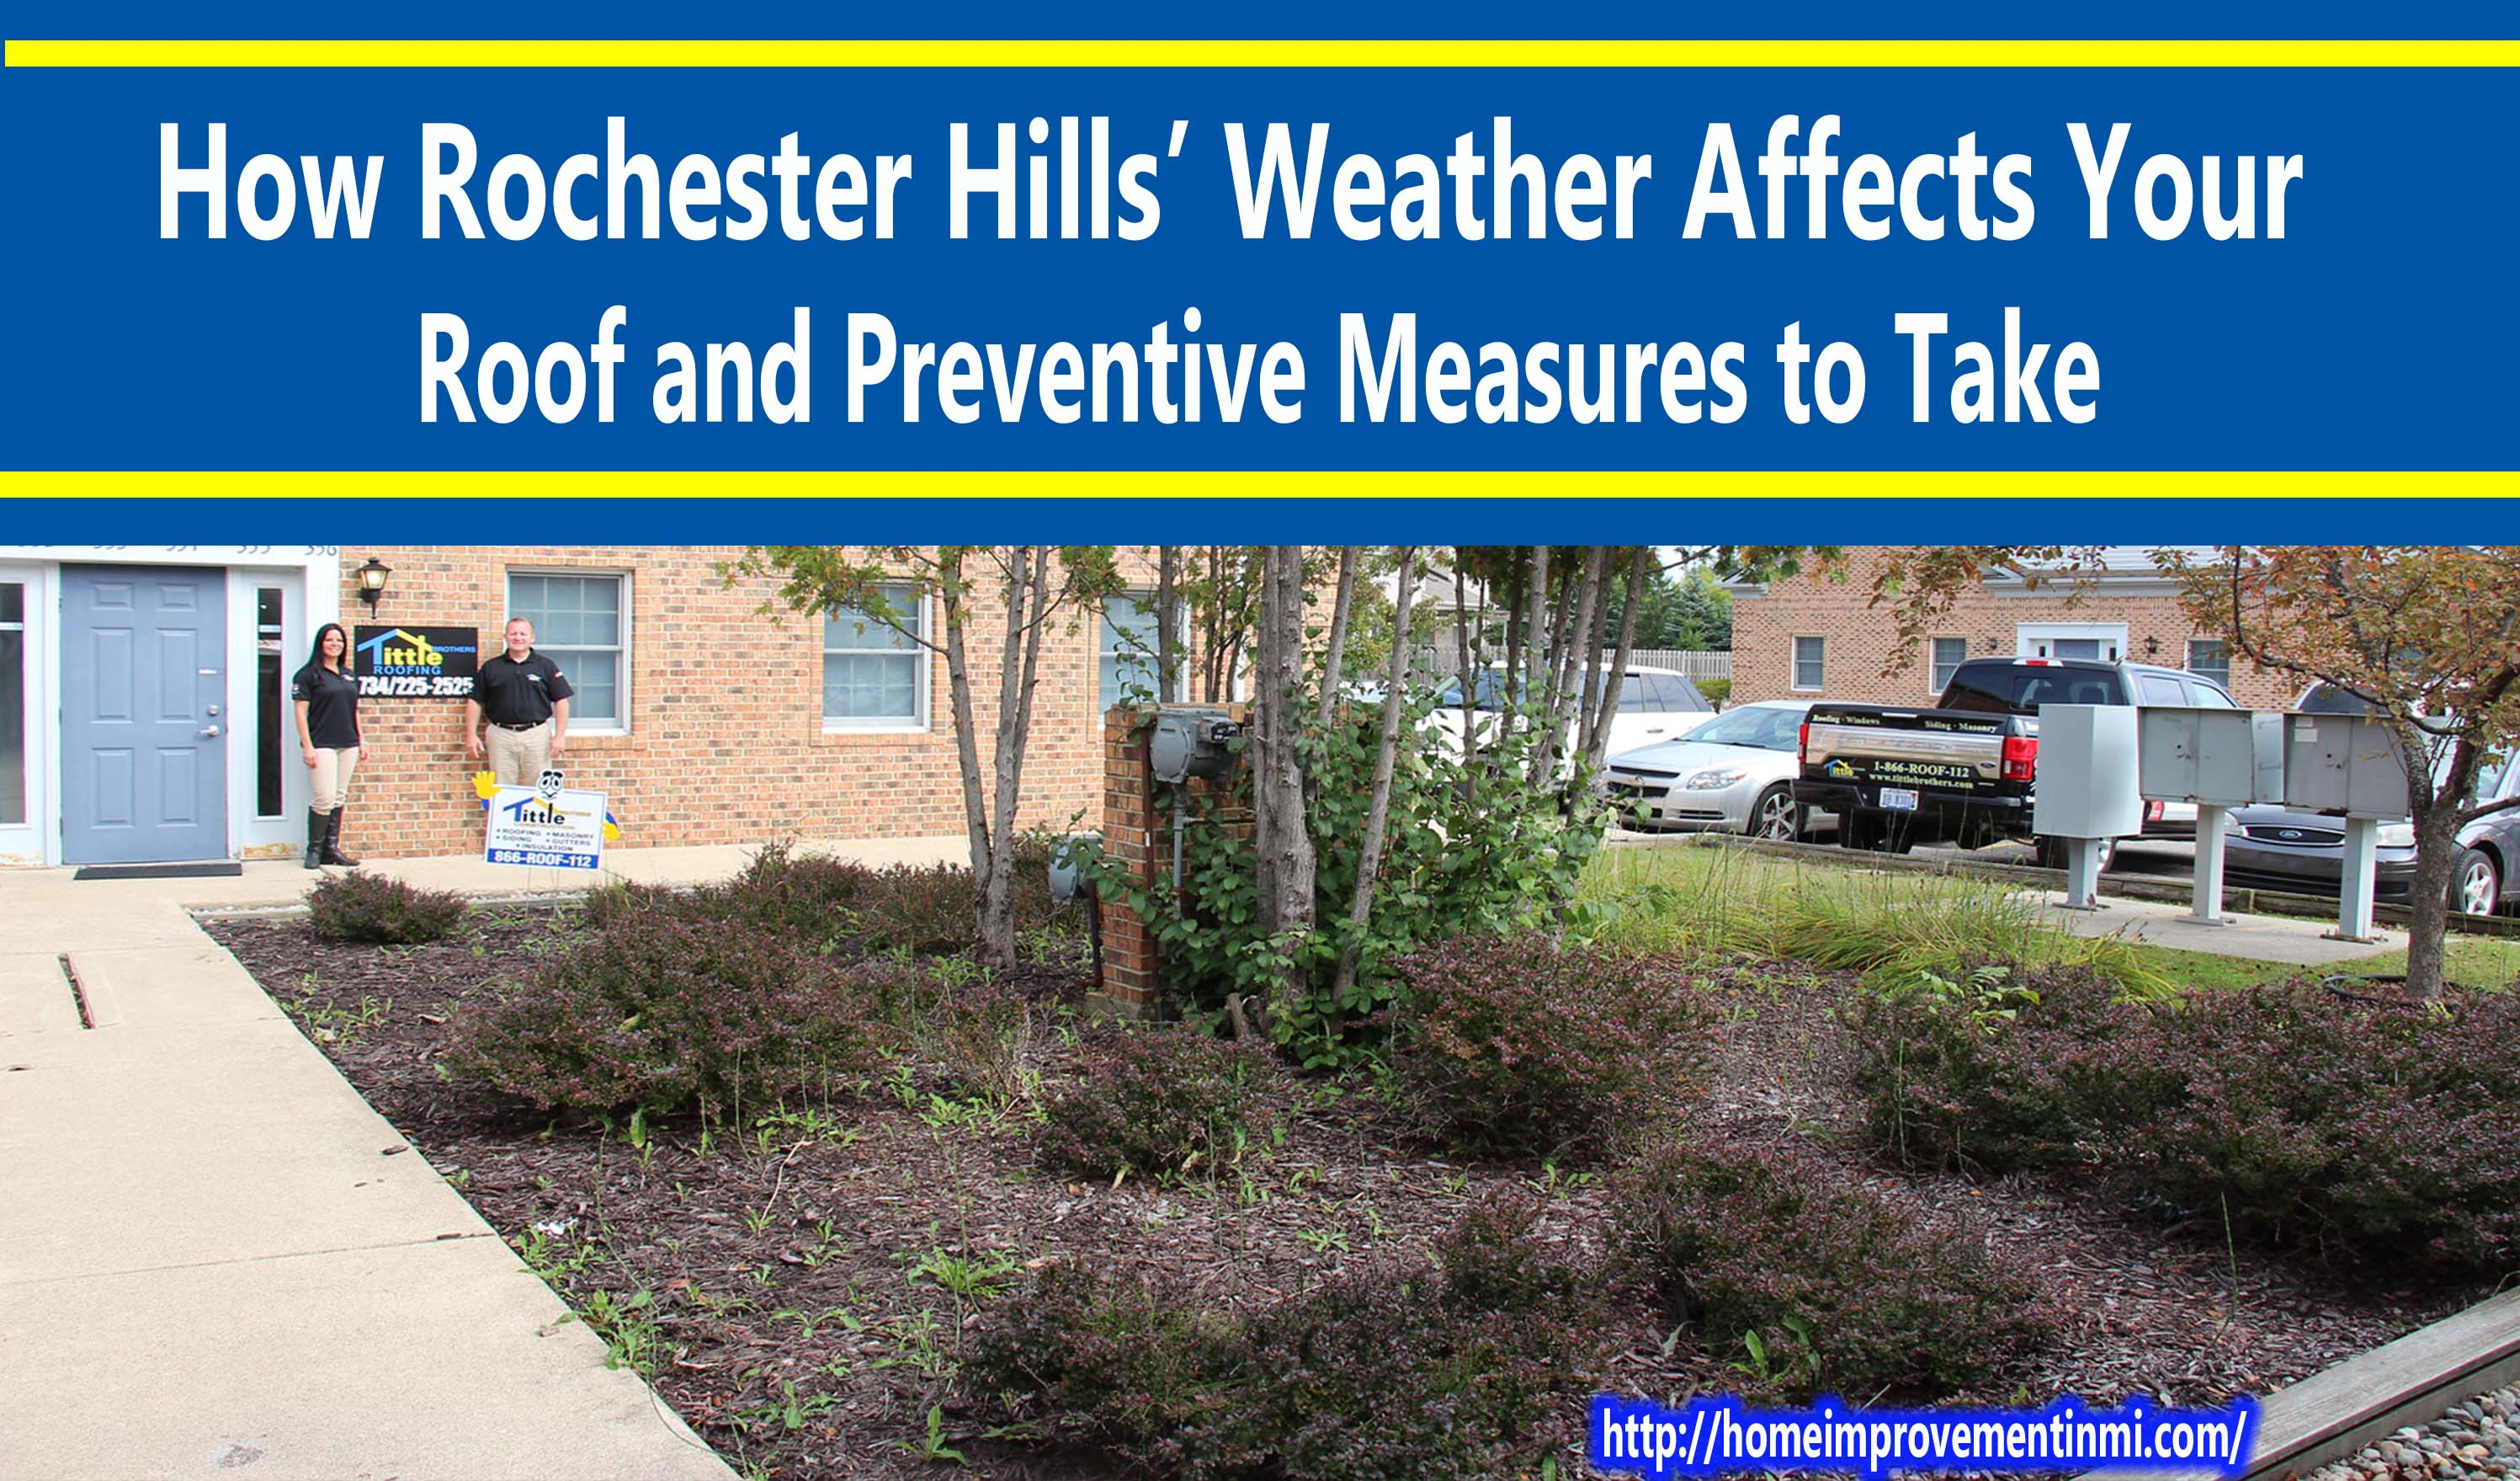 How Rochester Hills' Weather Affects Your Roof and Preventive Measures to Take